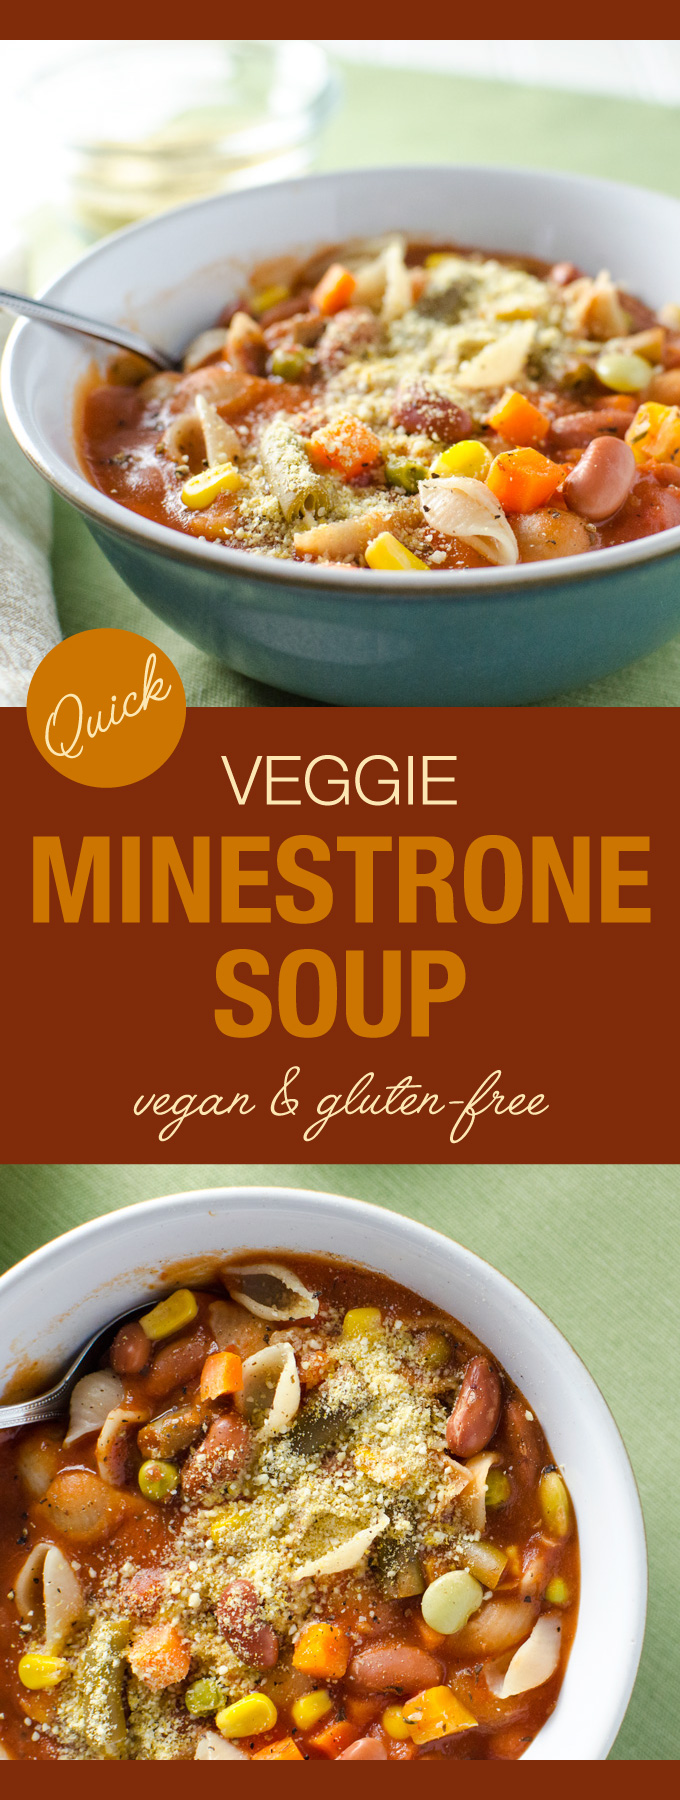 Quick Veggie Minestrone Soup - This thick, hearty, vegan and gluten-free soup can be made in less than 30 minutes with ingredients that are easy to keep on hand   VeggiePrimer.com